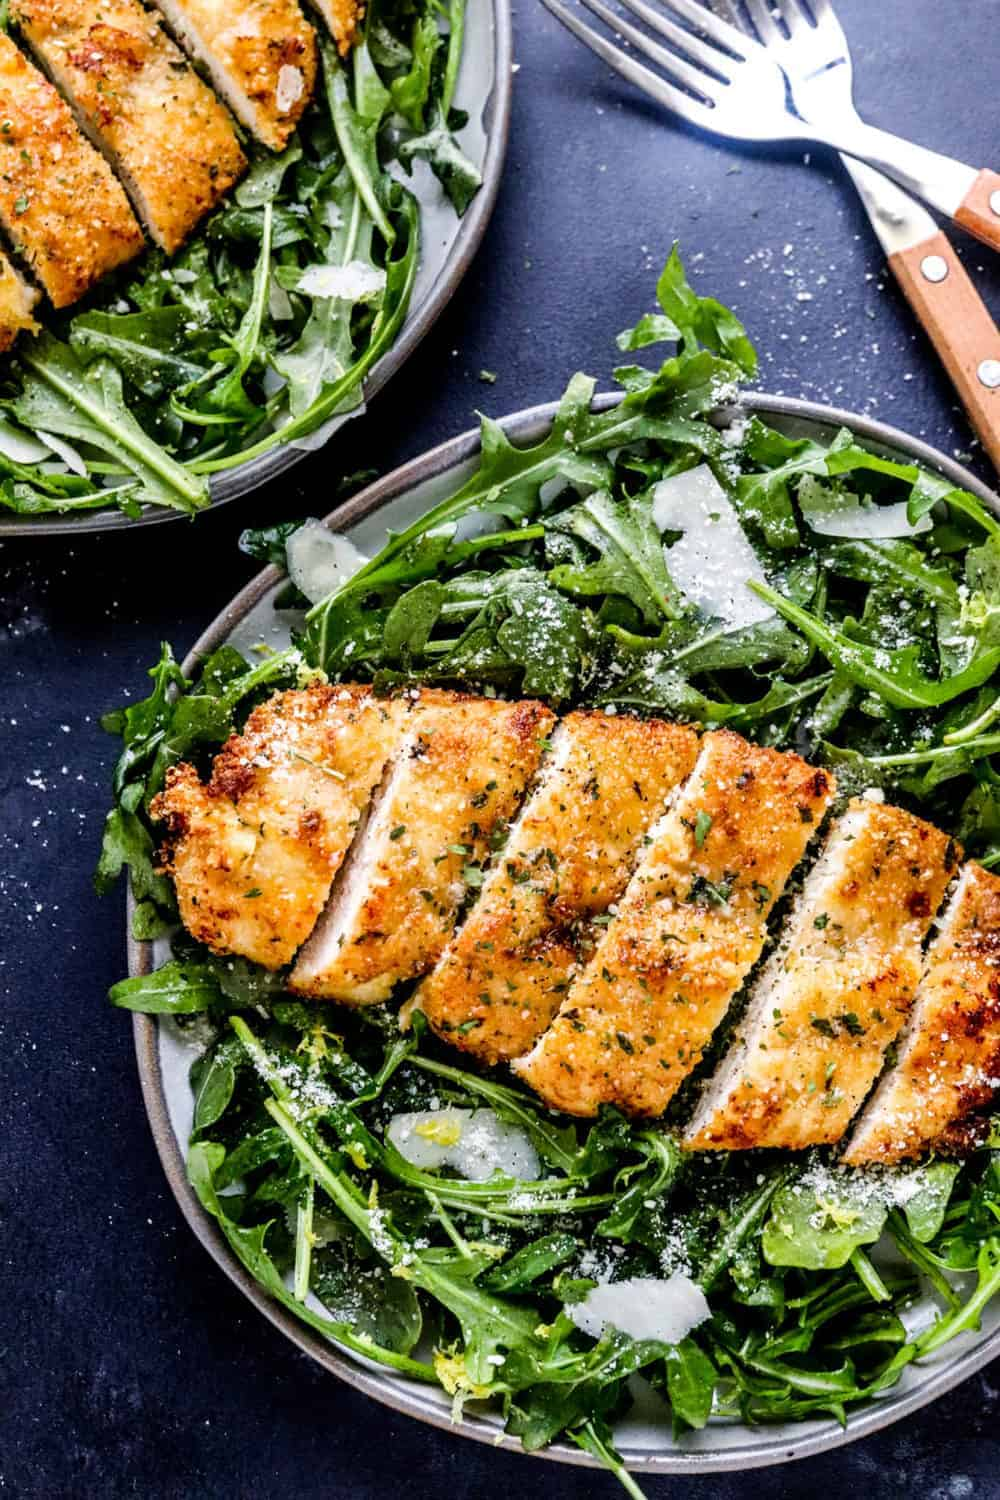 Breaded baked air fryer chicken breast on a bed of Arugula with a few forks next to it and another plate of he chicken on arugula behind it.